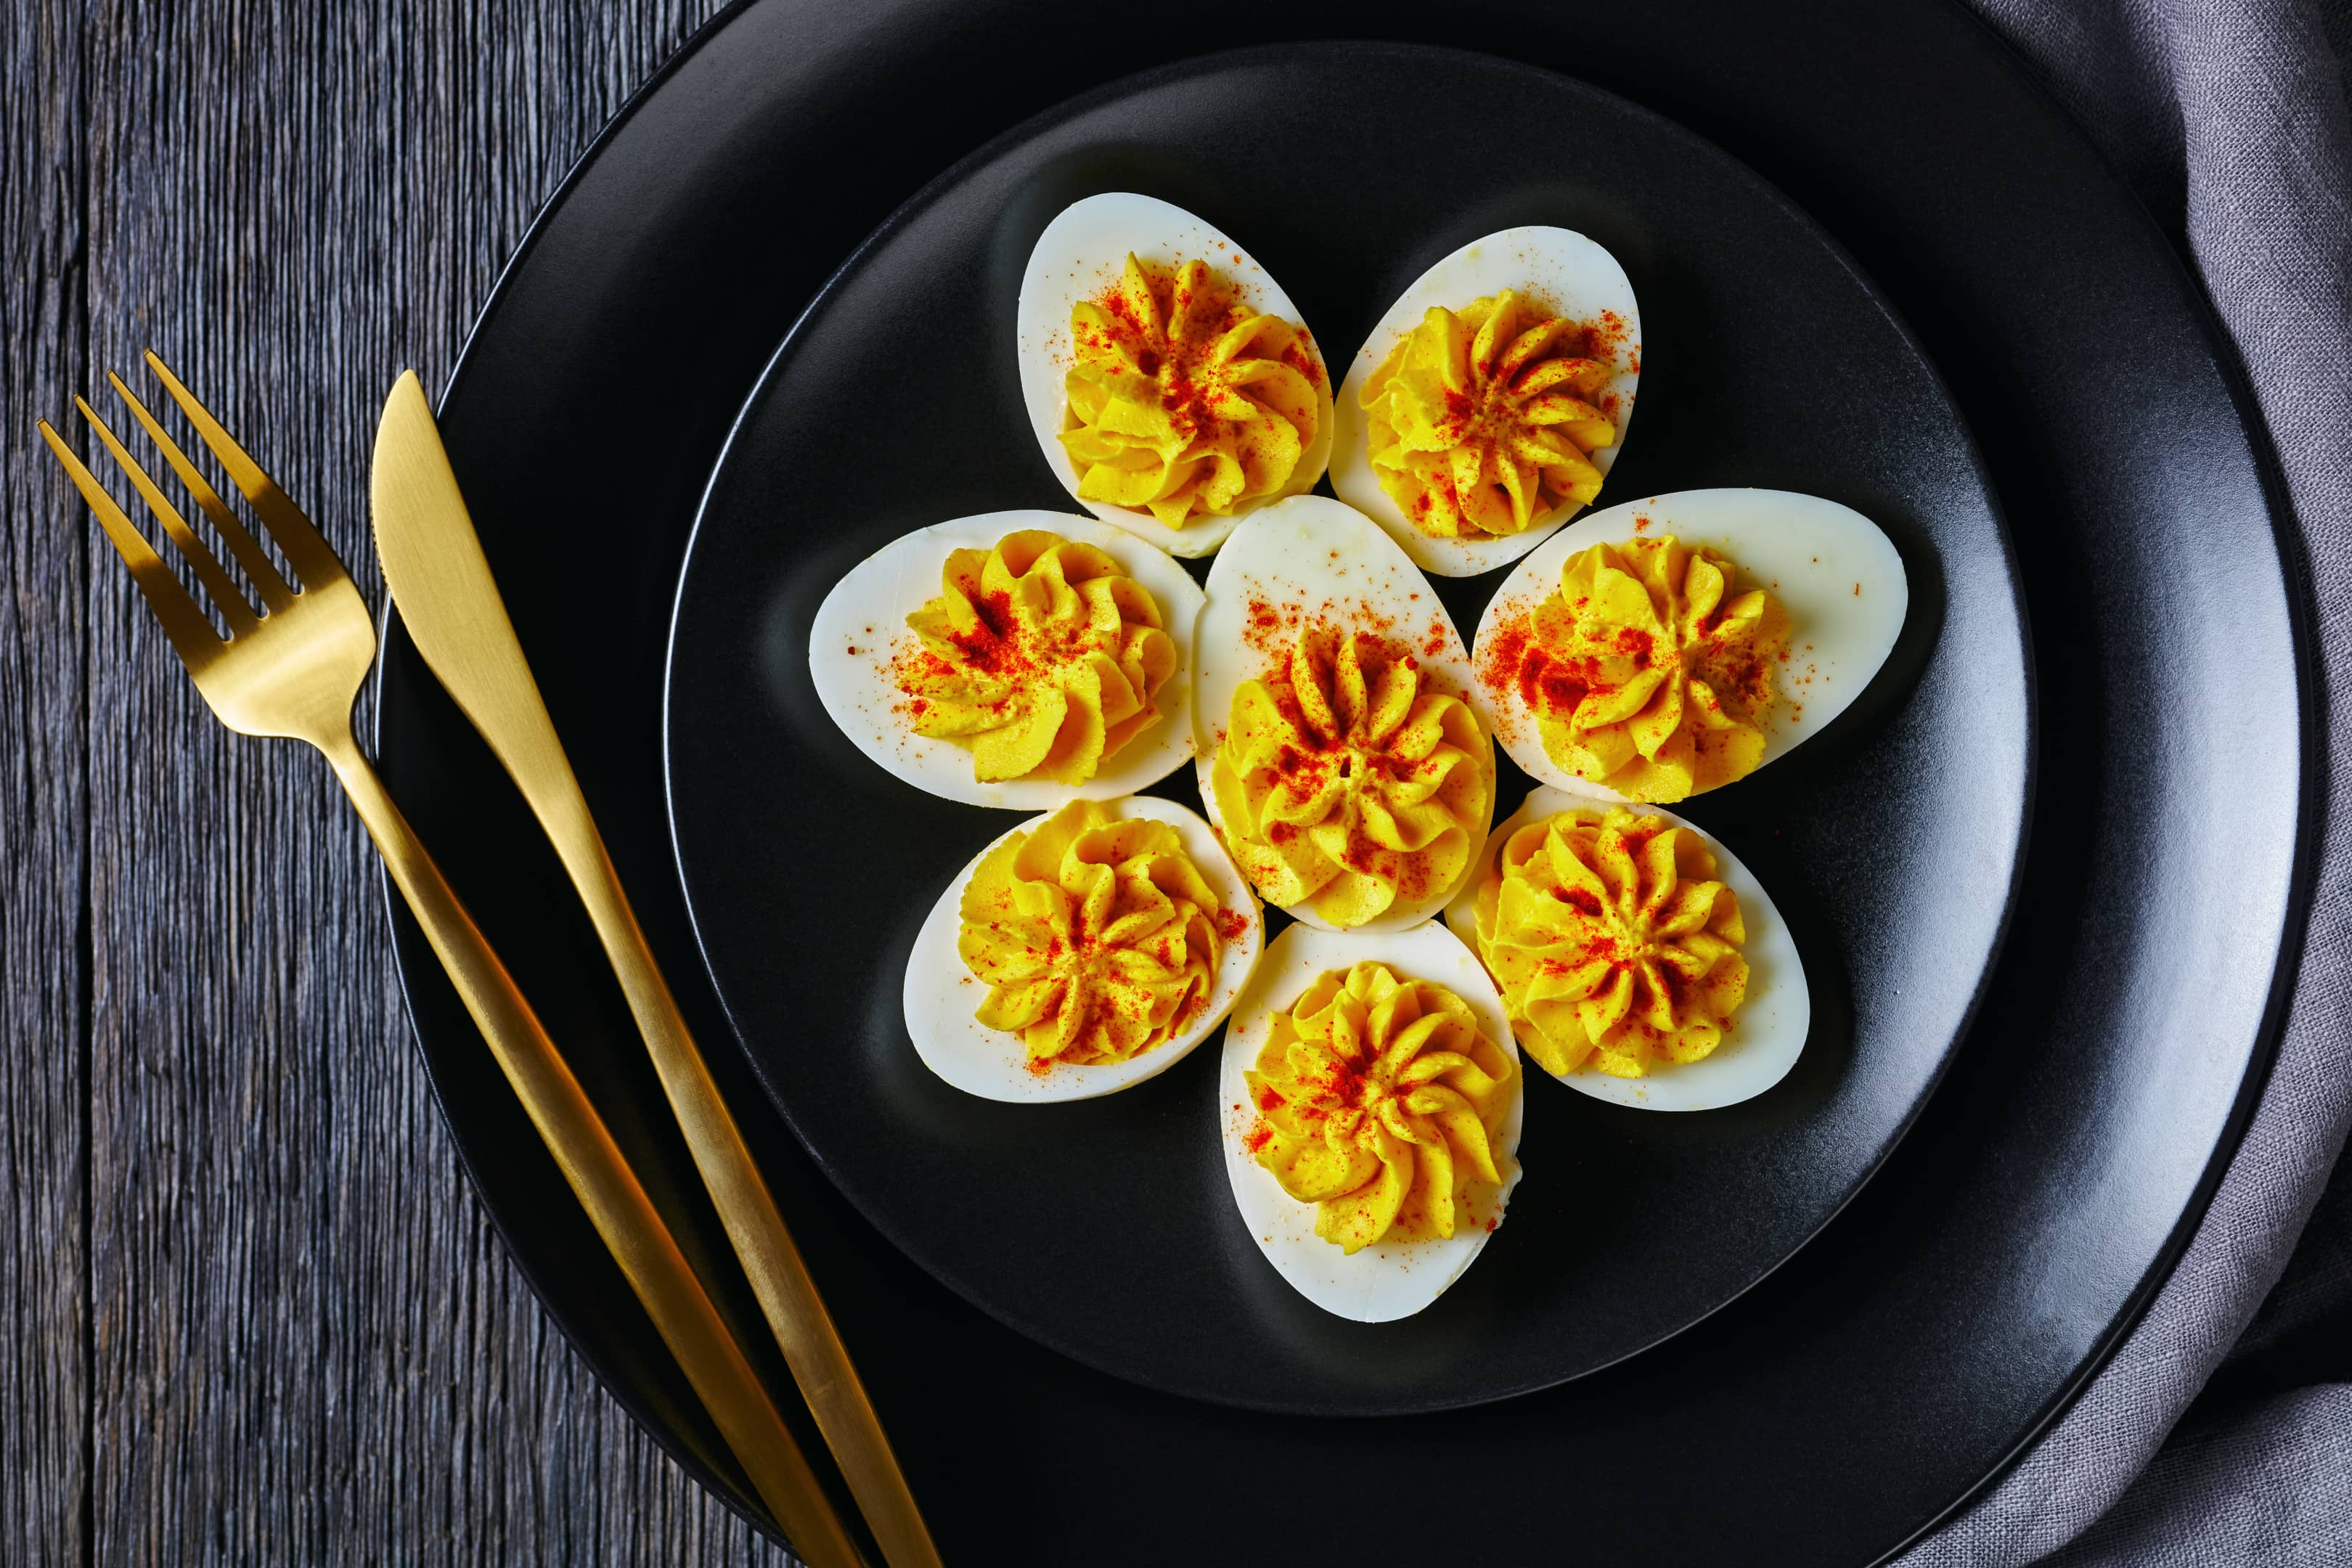 Classic deviled eggs filled with mustard mayonnaise white vinegar sprinkled with smoked paprika on black plate